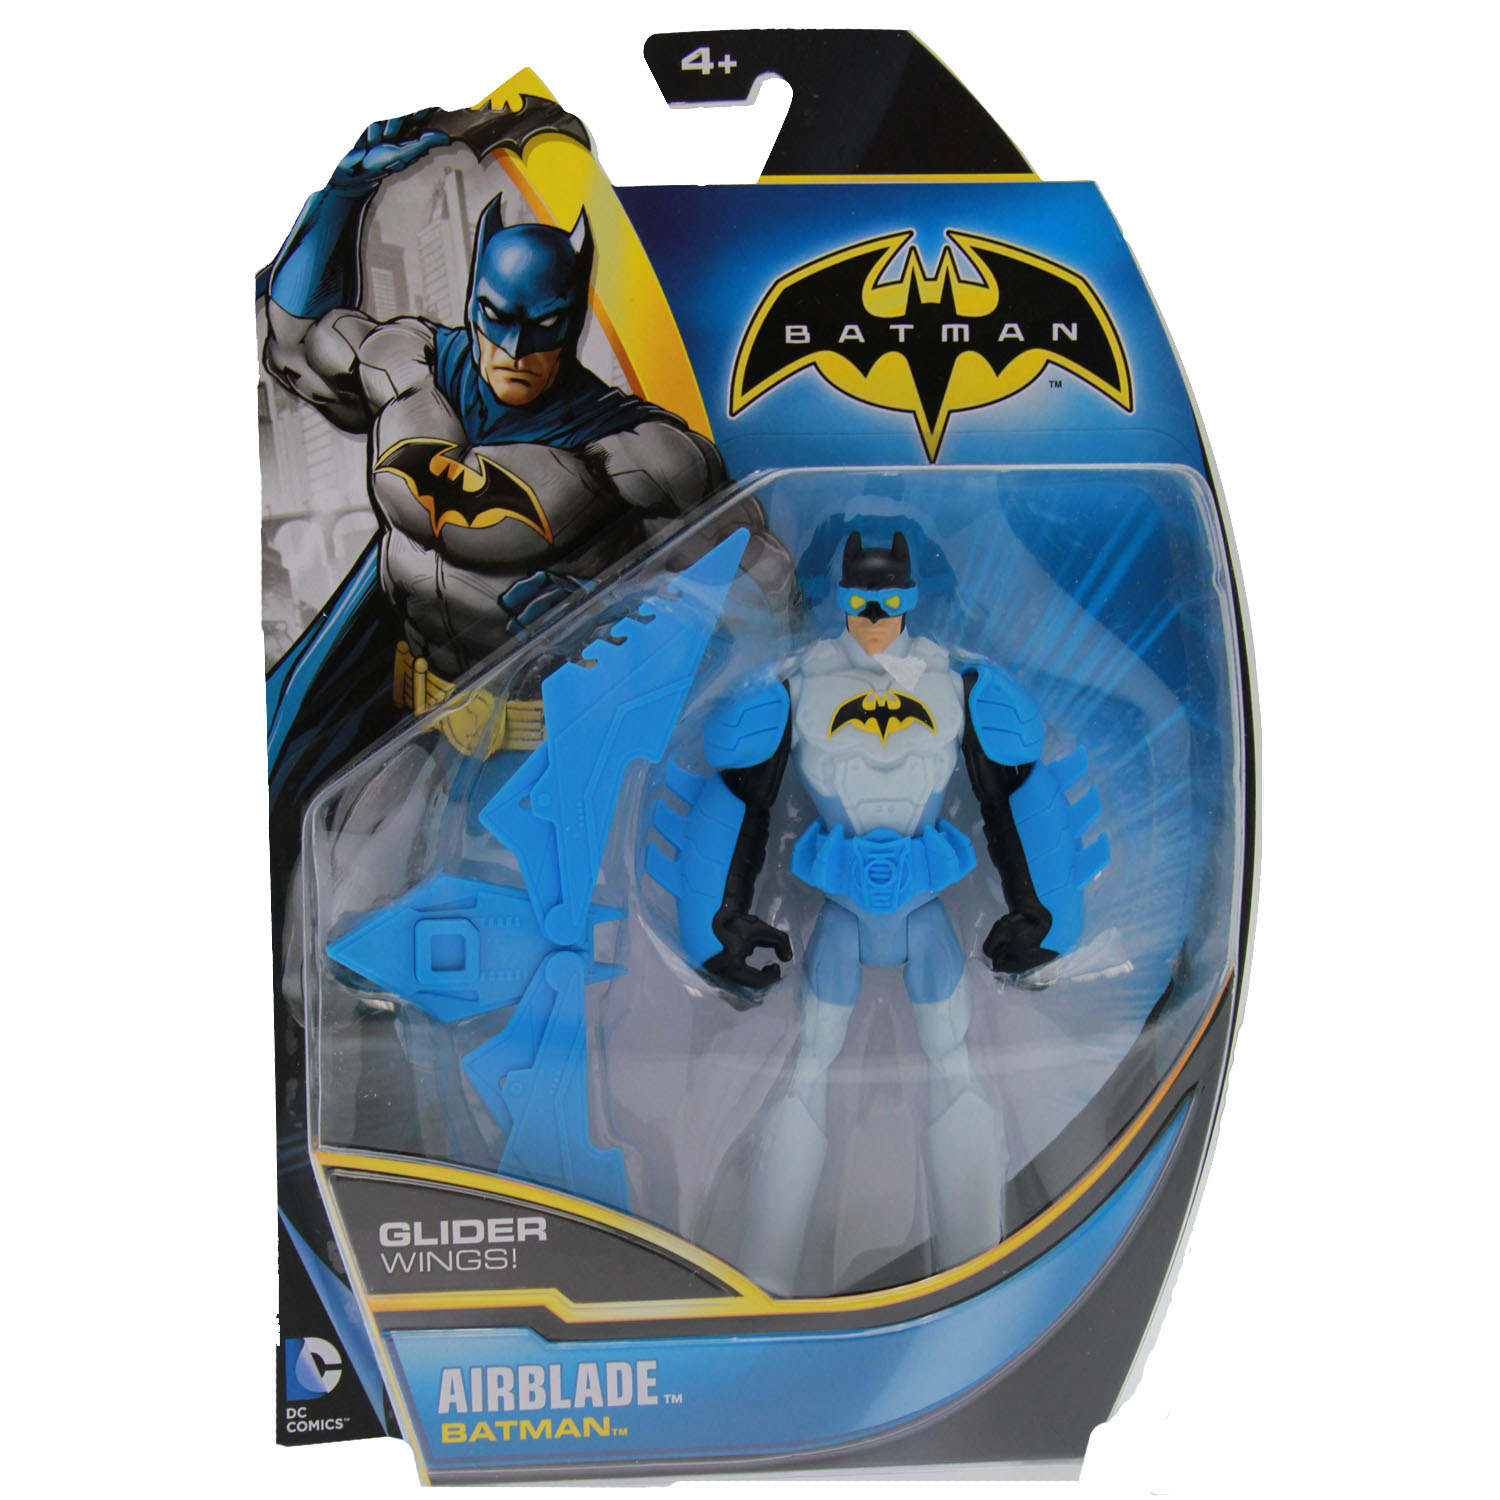 Batman Toys For Kids : Batman toys power strike airblade figure at toystop